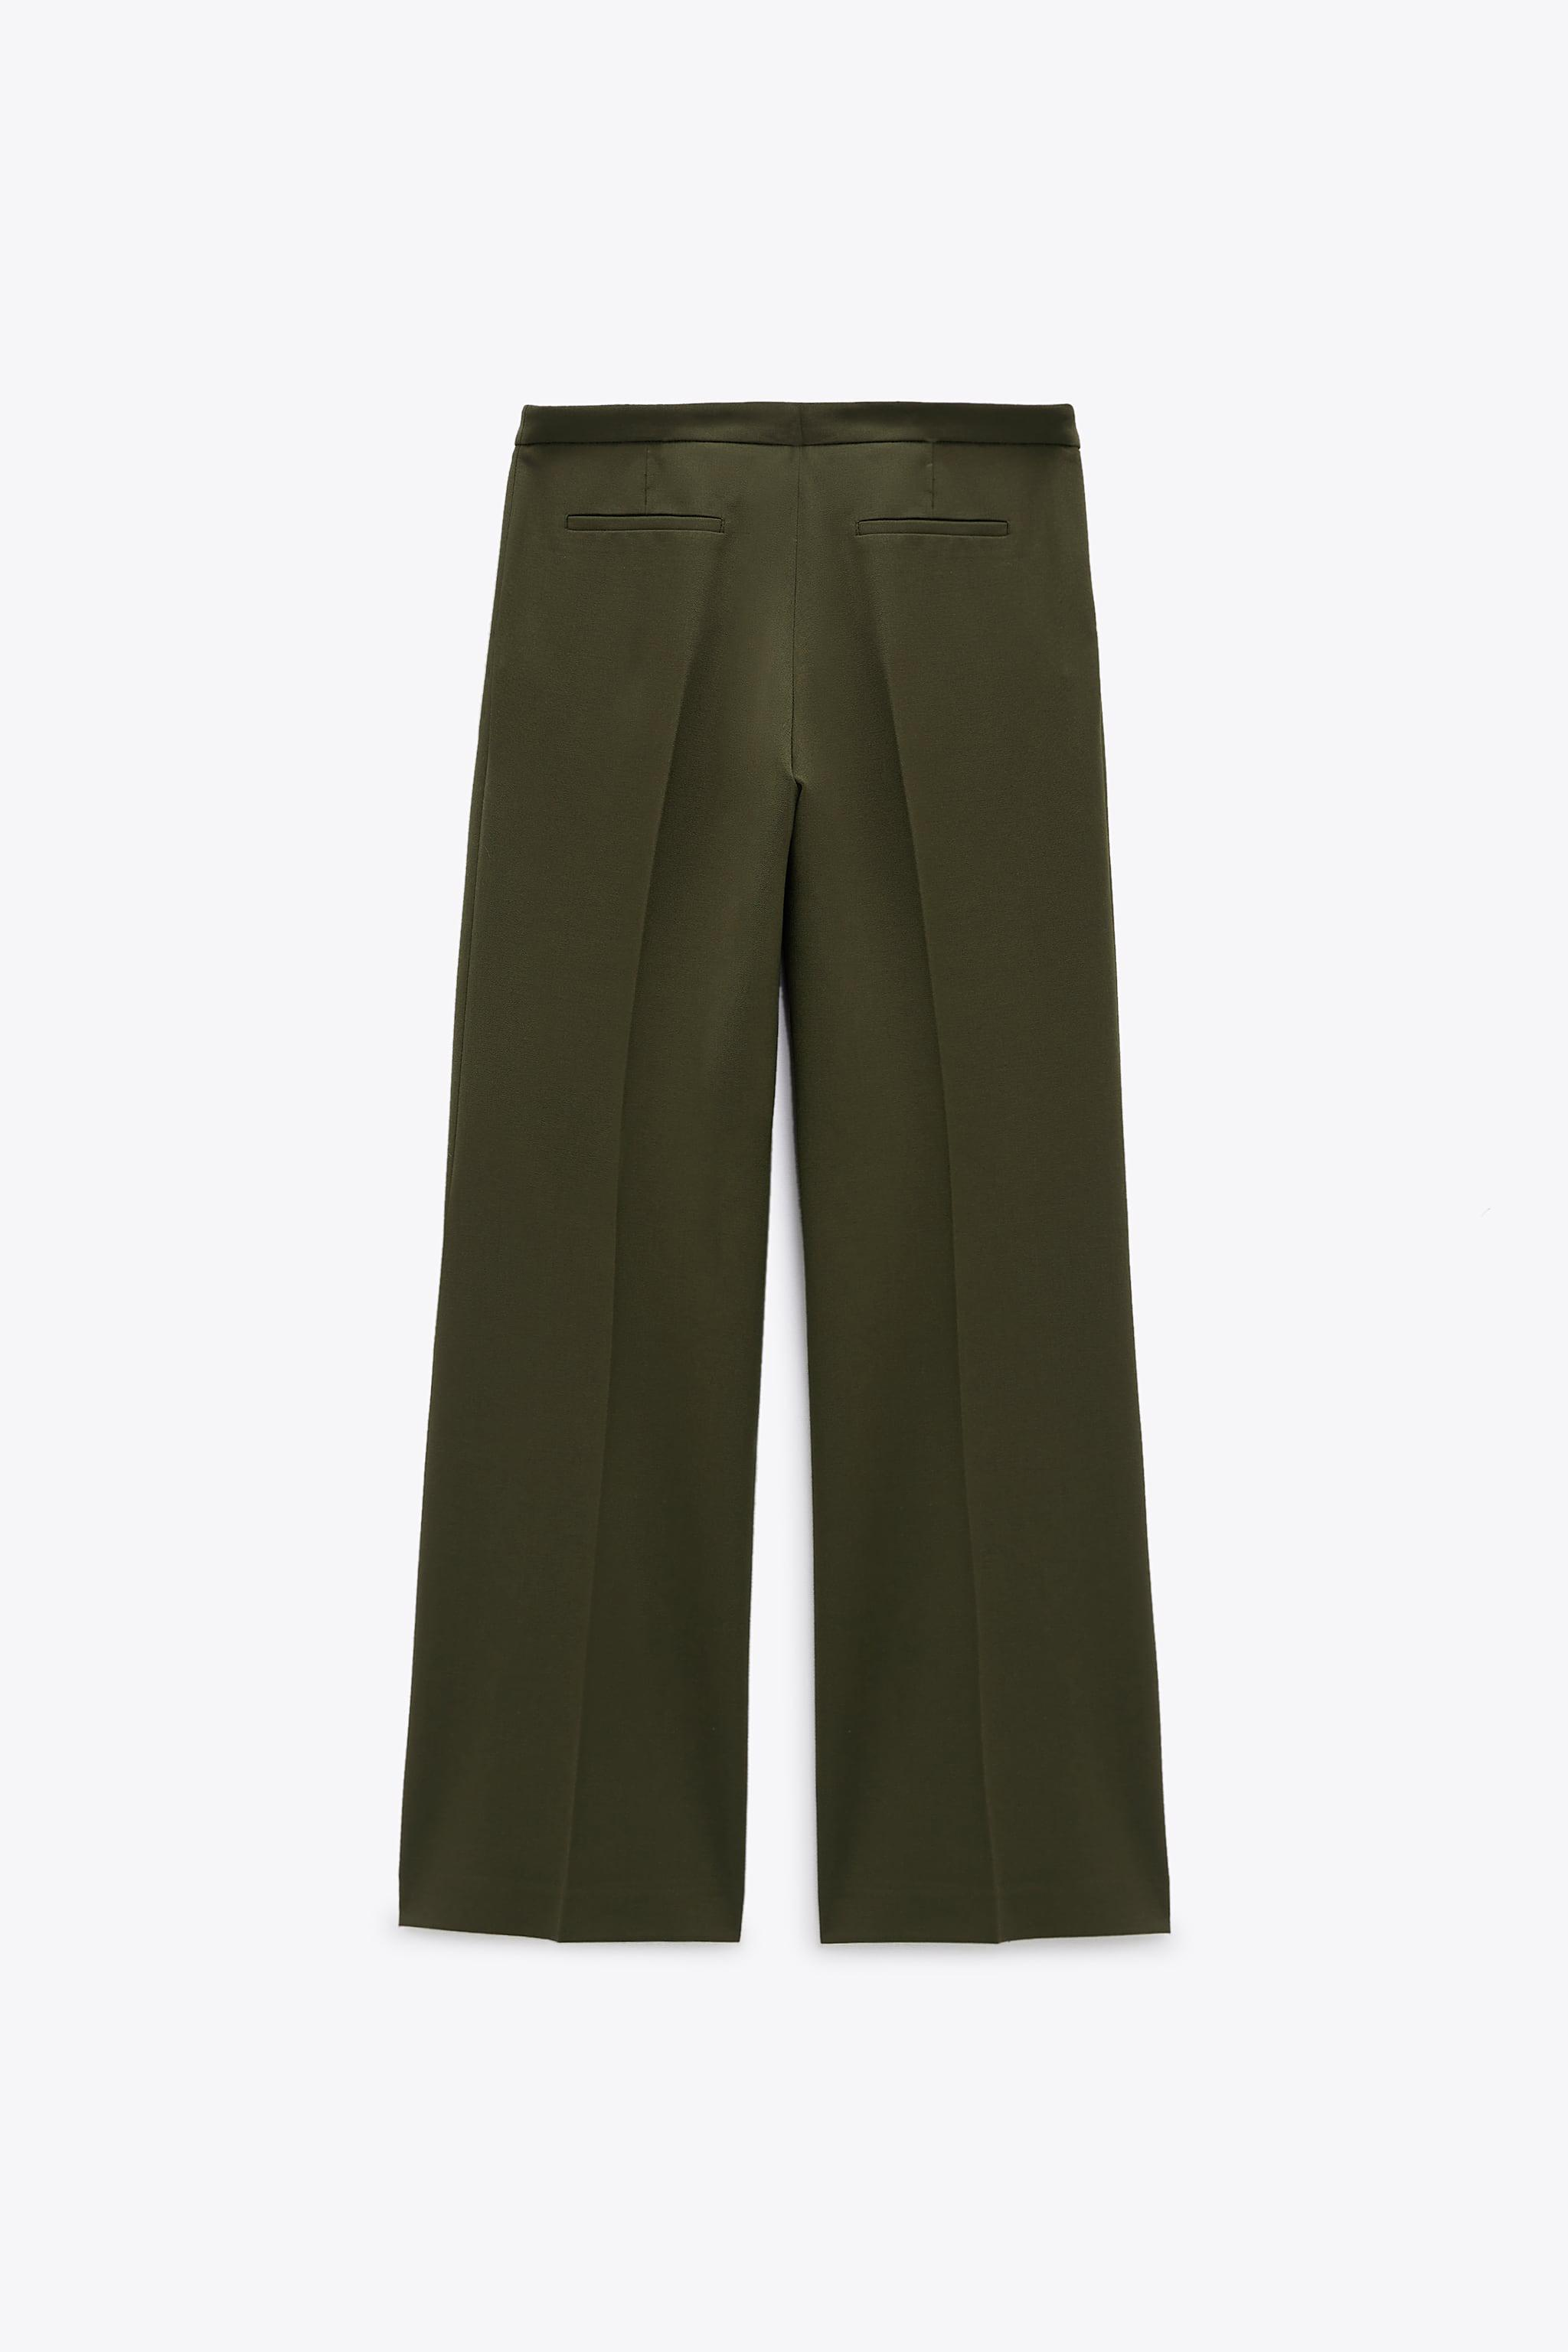 LIMITED EDITION PANTS 7